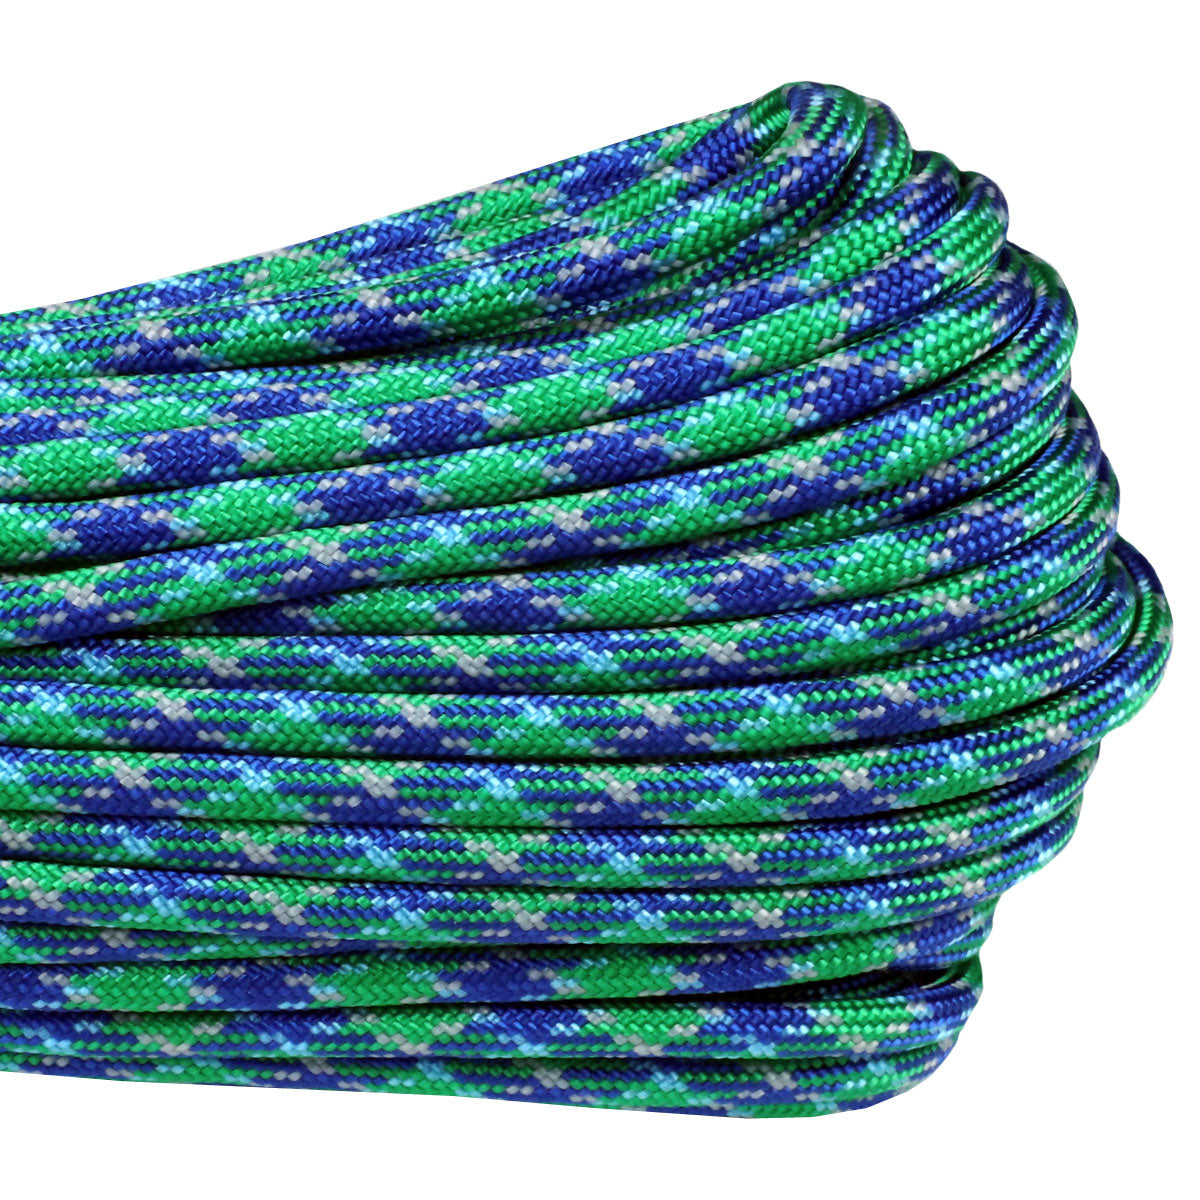 550 x 100ft Paracord - Stream